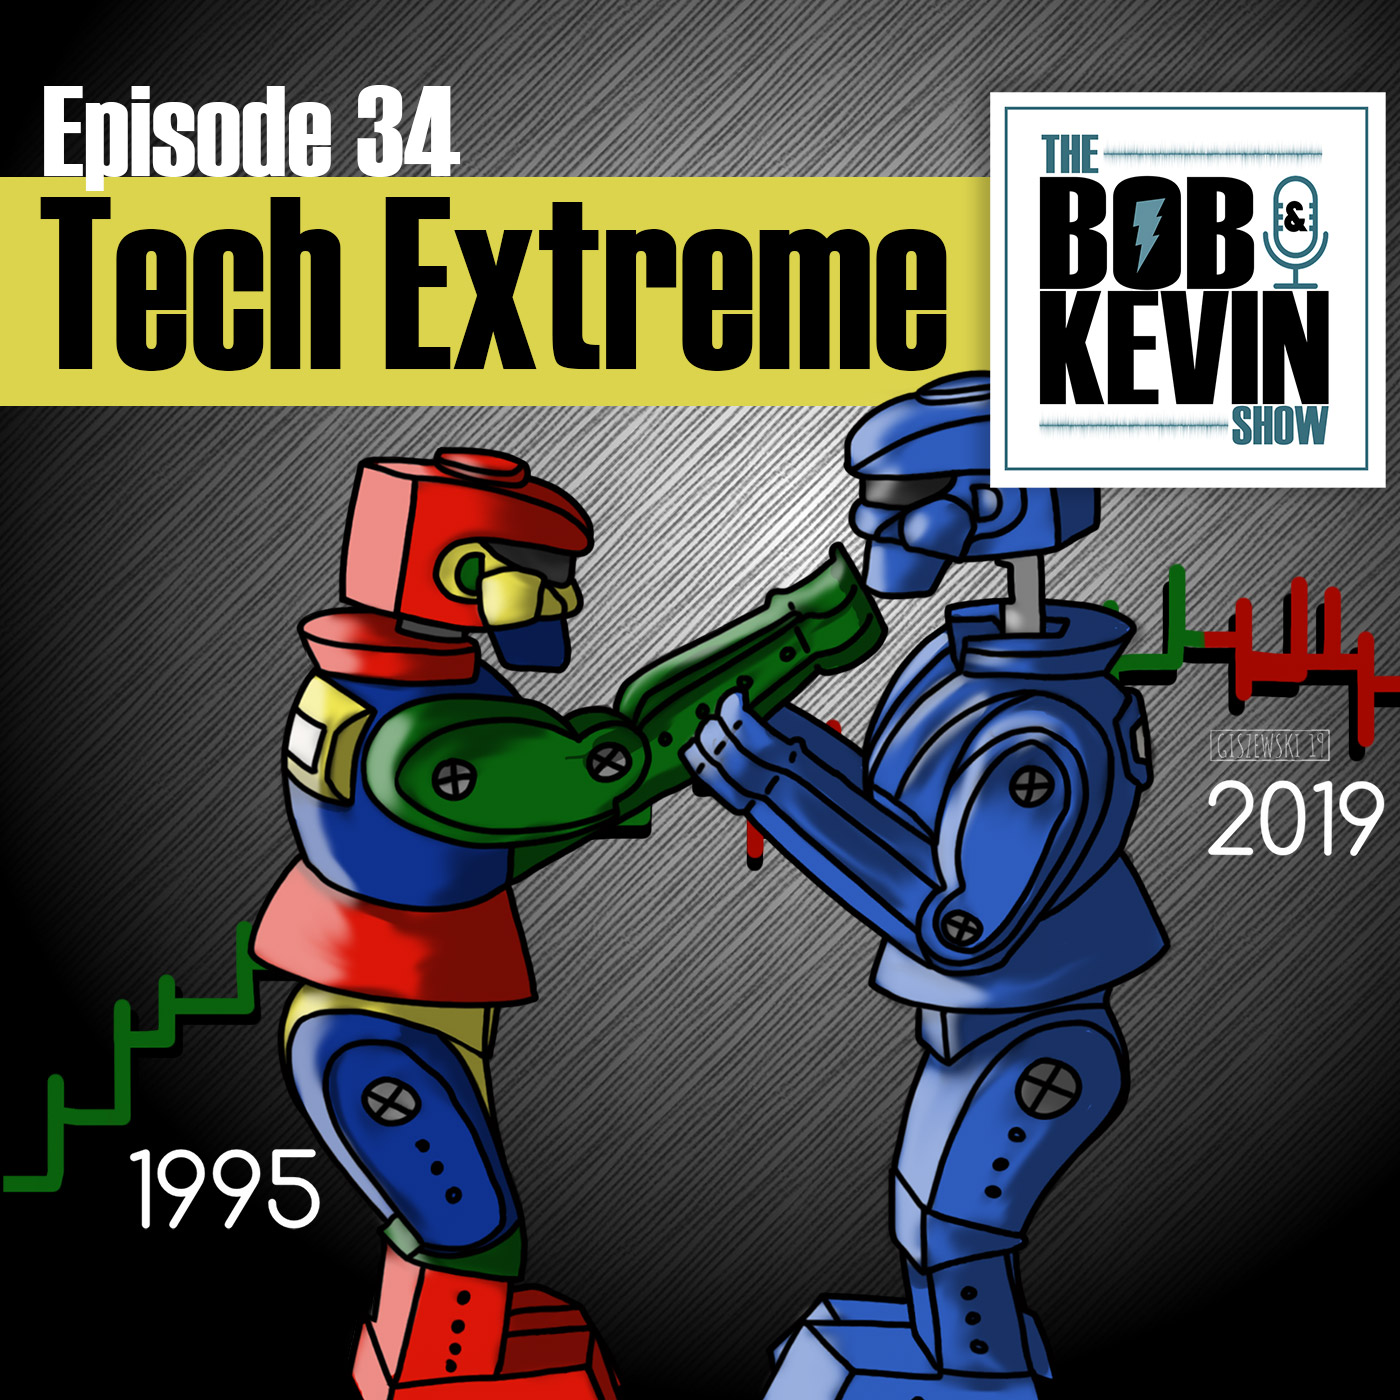 Ep. 034 - Carl Sagan's 1995 prediction, IOT Security and Sean Carroll and artificial intelligence stock market battles